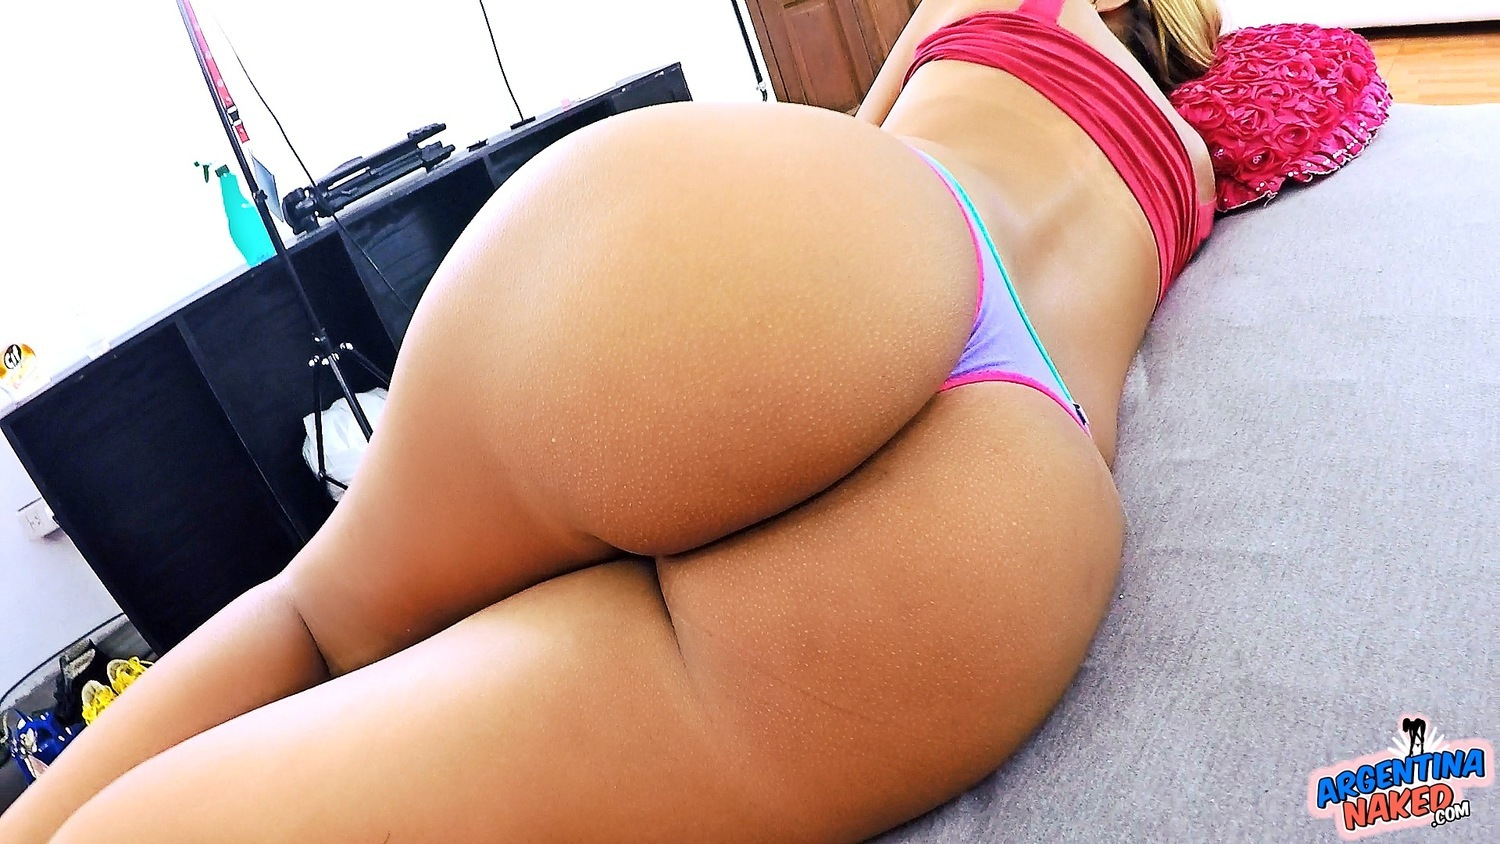 Free full length videos round ass local girls tiny